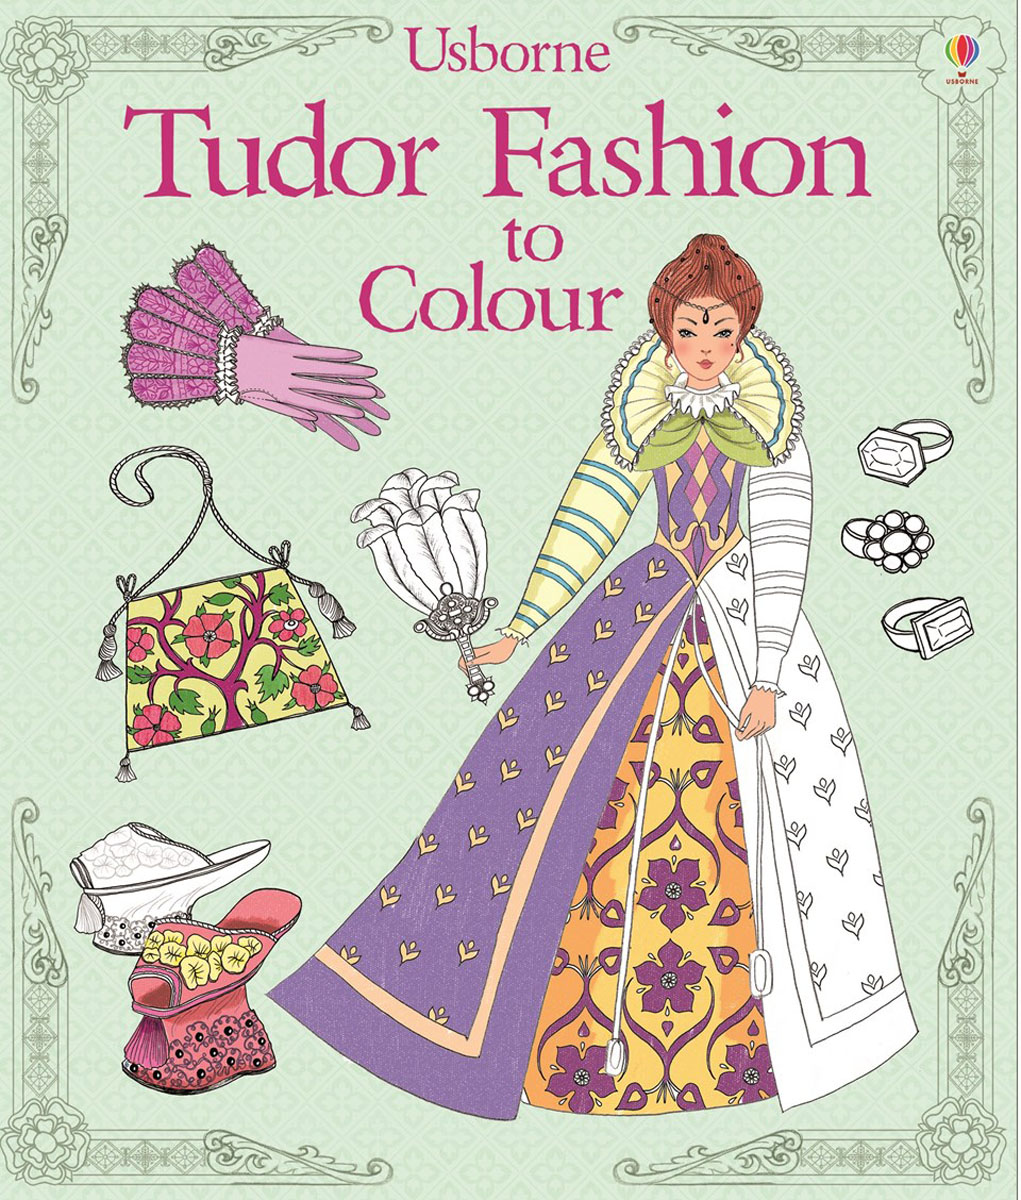 Tudor fashion to colour information ages